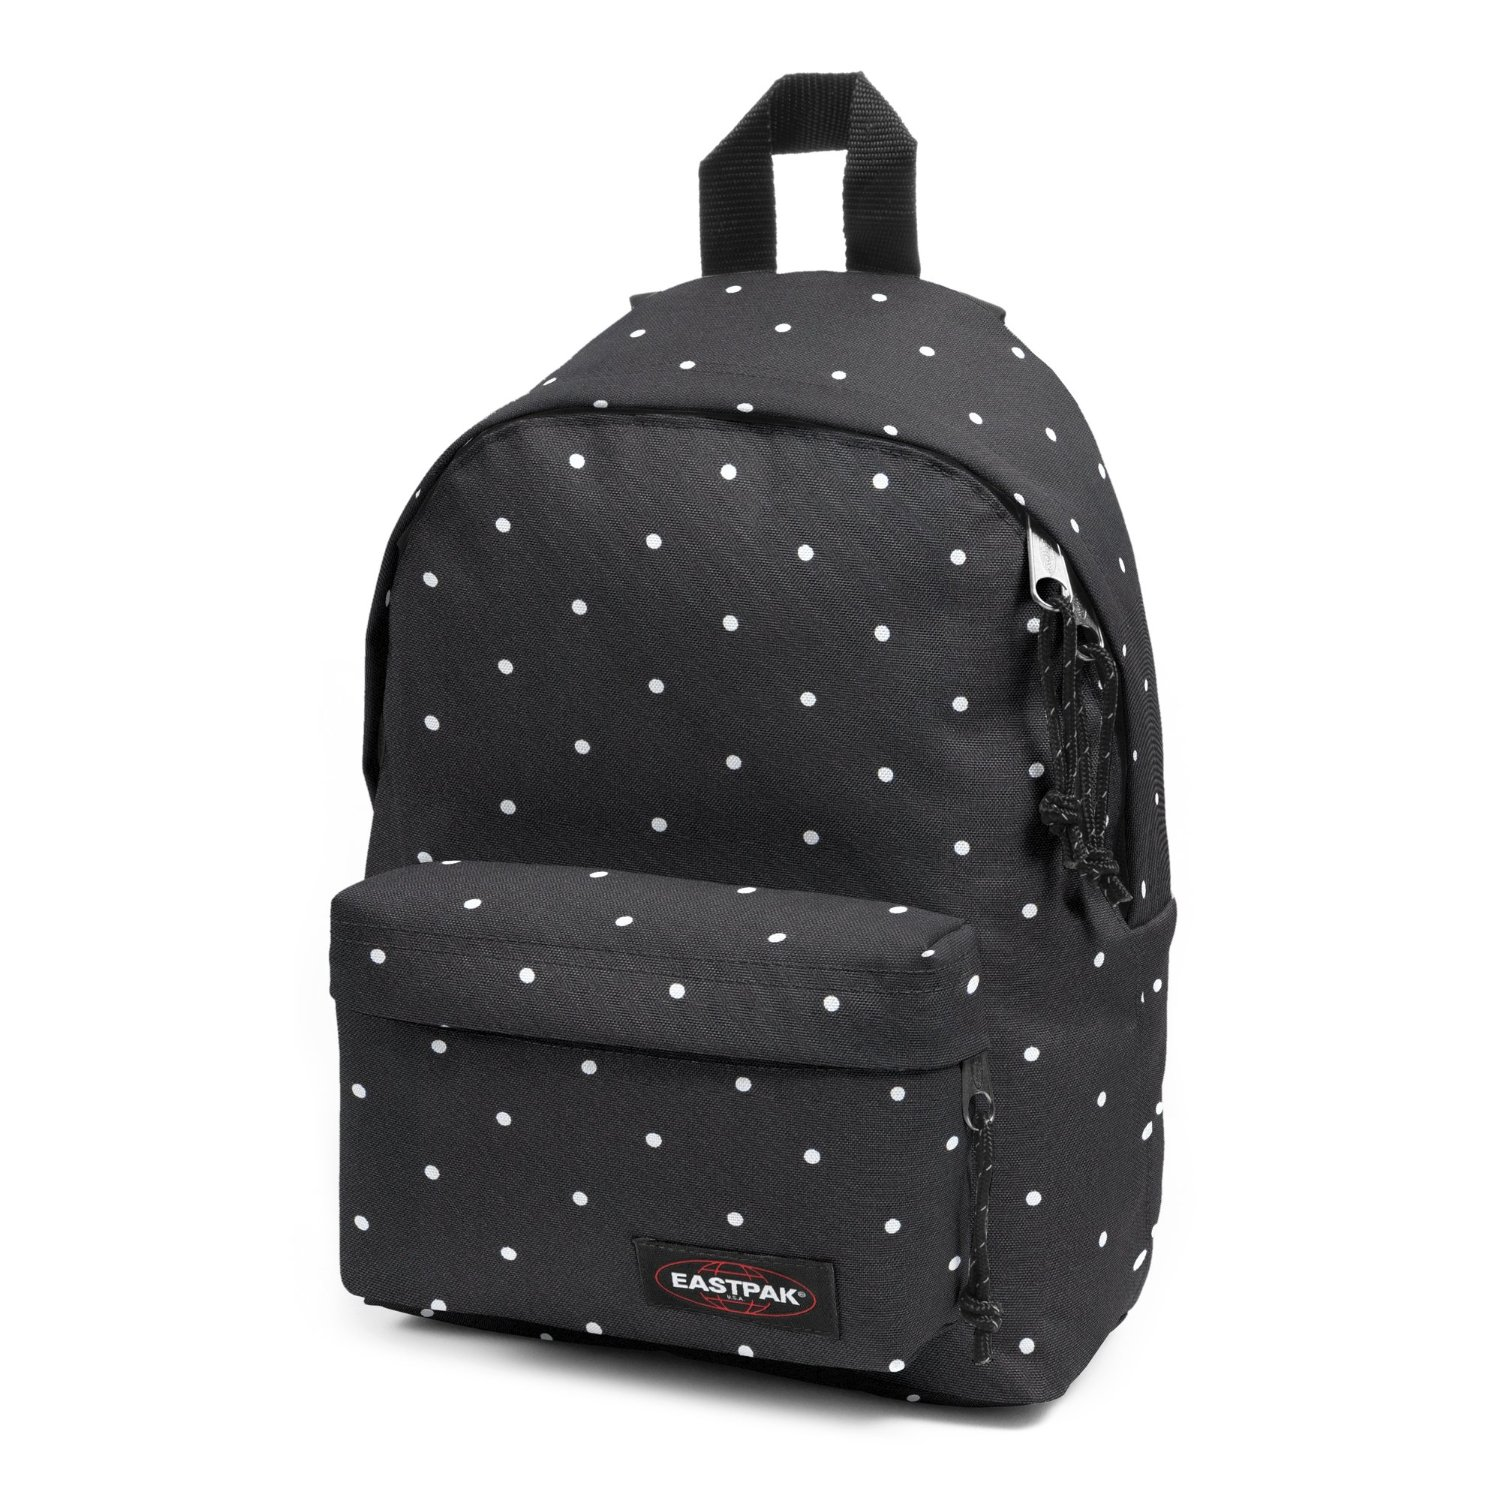 sac scolaire eastpak tout pour partir. Black Bedroom Furniture Sets. Home Design Ideas